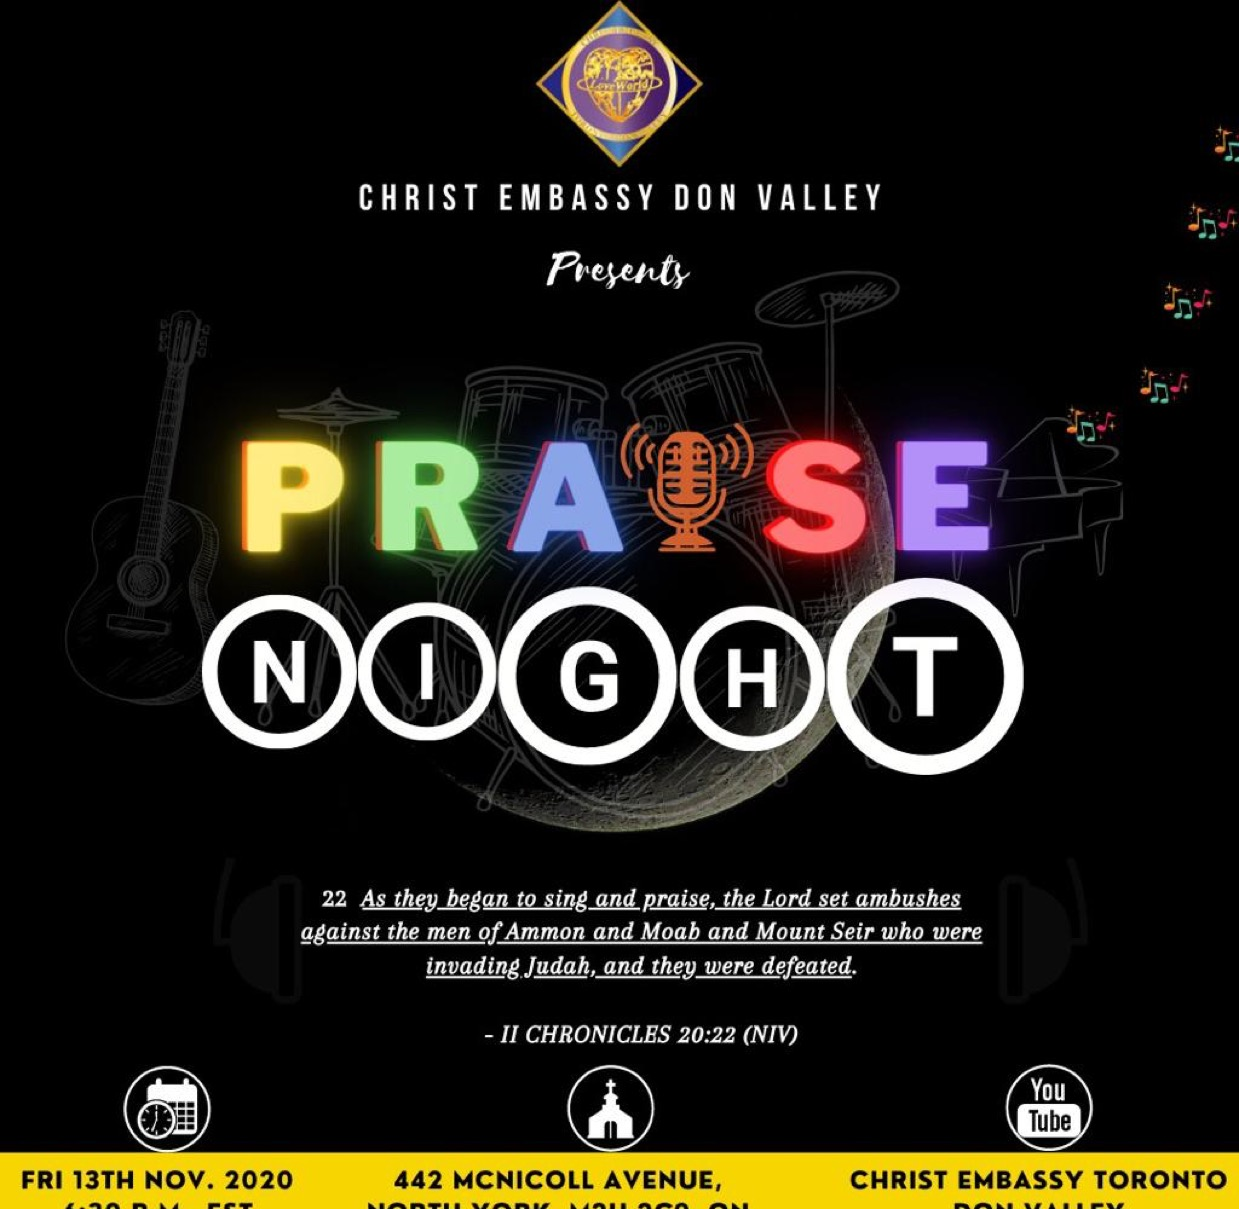 Come let us Praise God